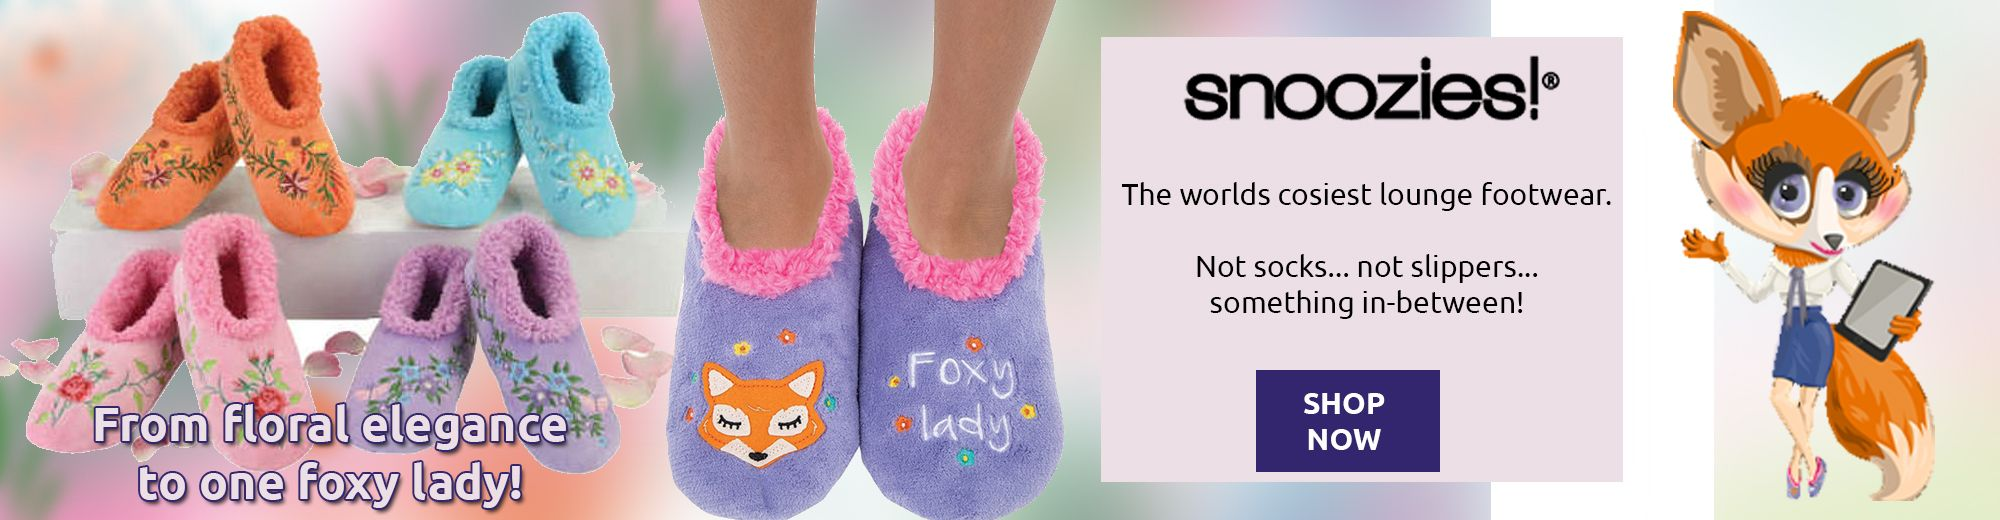 Snoozies Soft Slippers